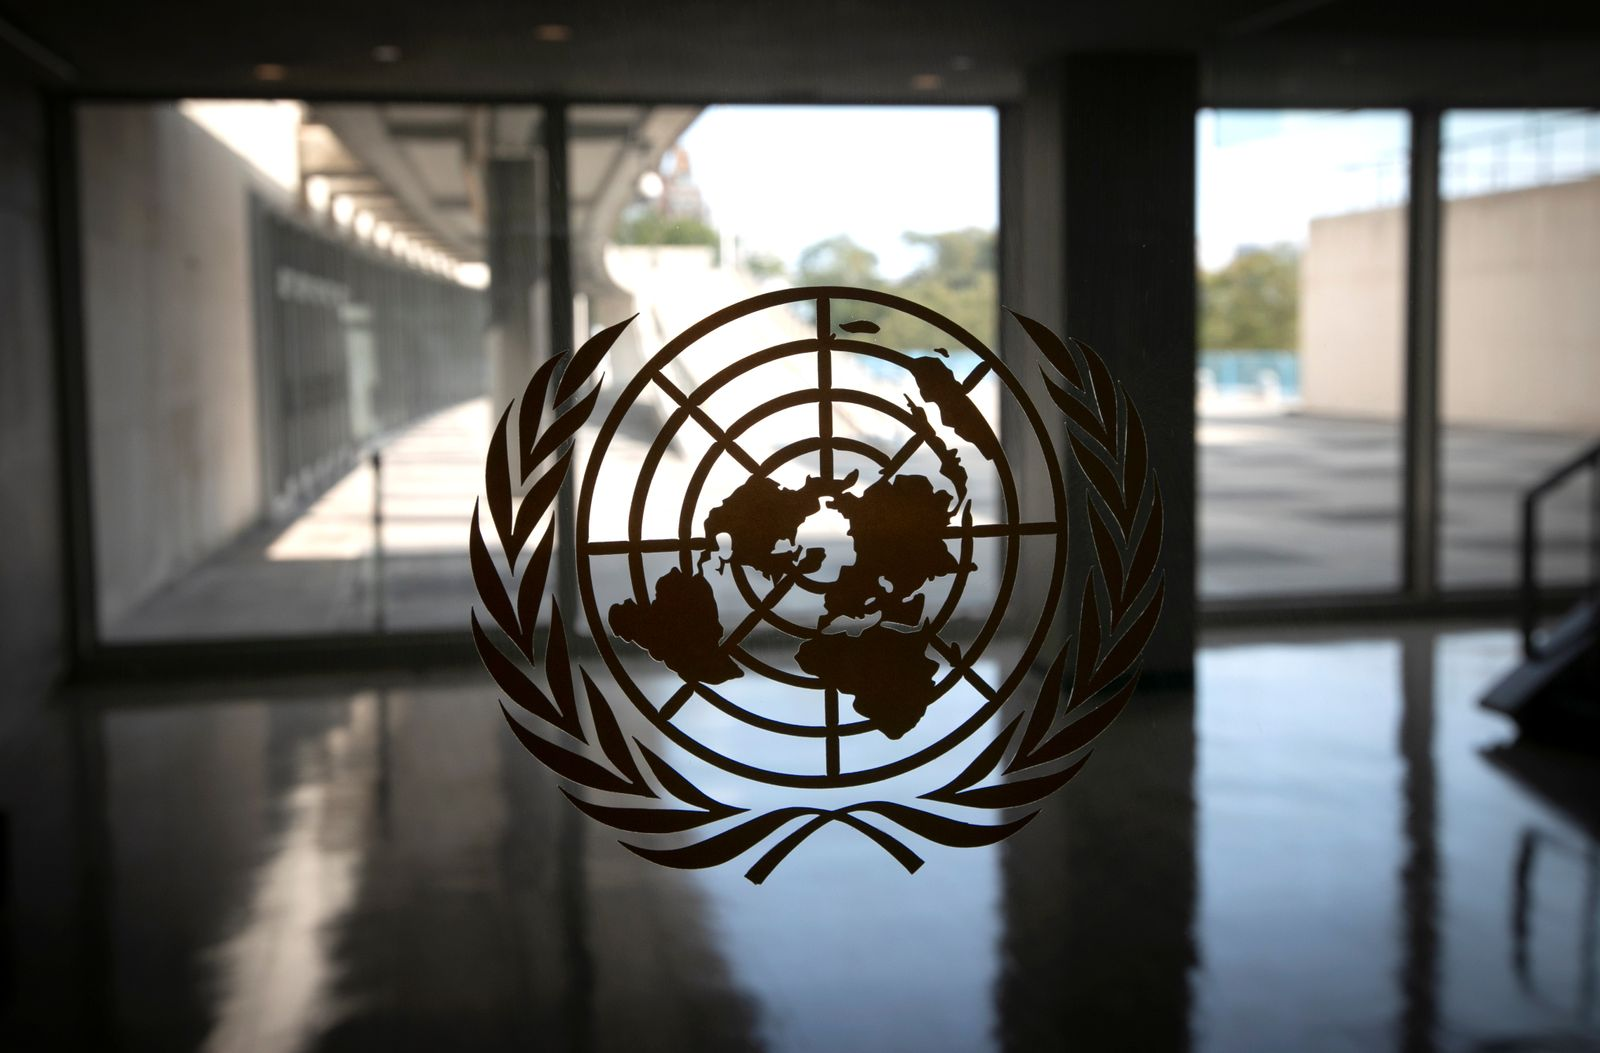 75th annual United Nations General Assembly to be held mostly virtually due to the coronavirus disease (COVID-19) pandemic in New York